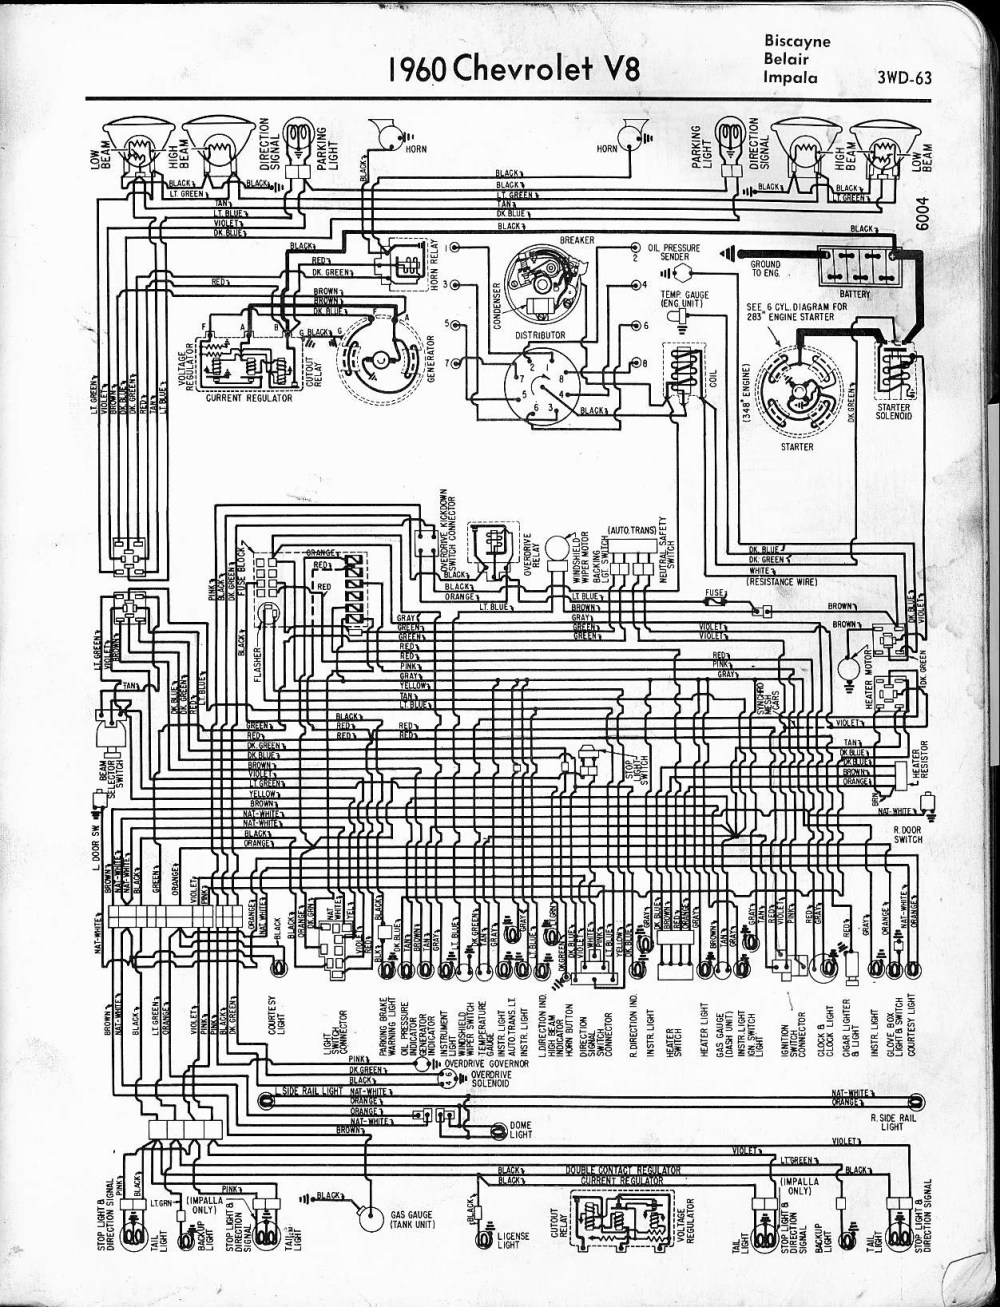 medium resolution of 2001 chevy impala engine diagram 57 65 chevy wiring diagrams of 2001 chevy impala engine diagram